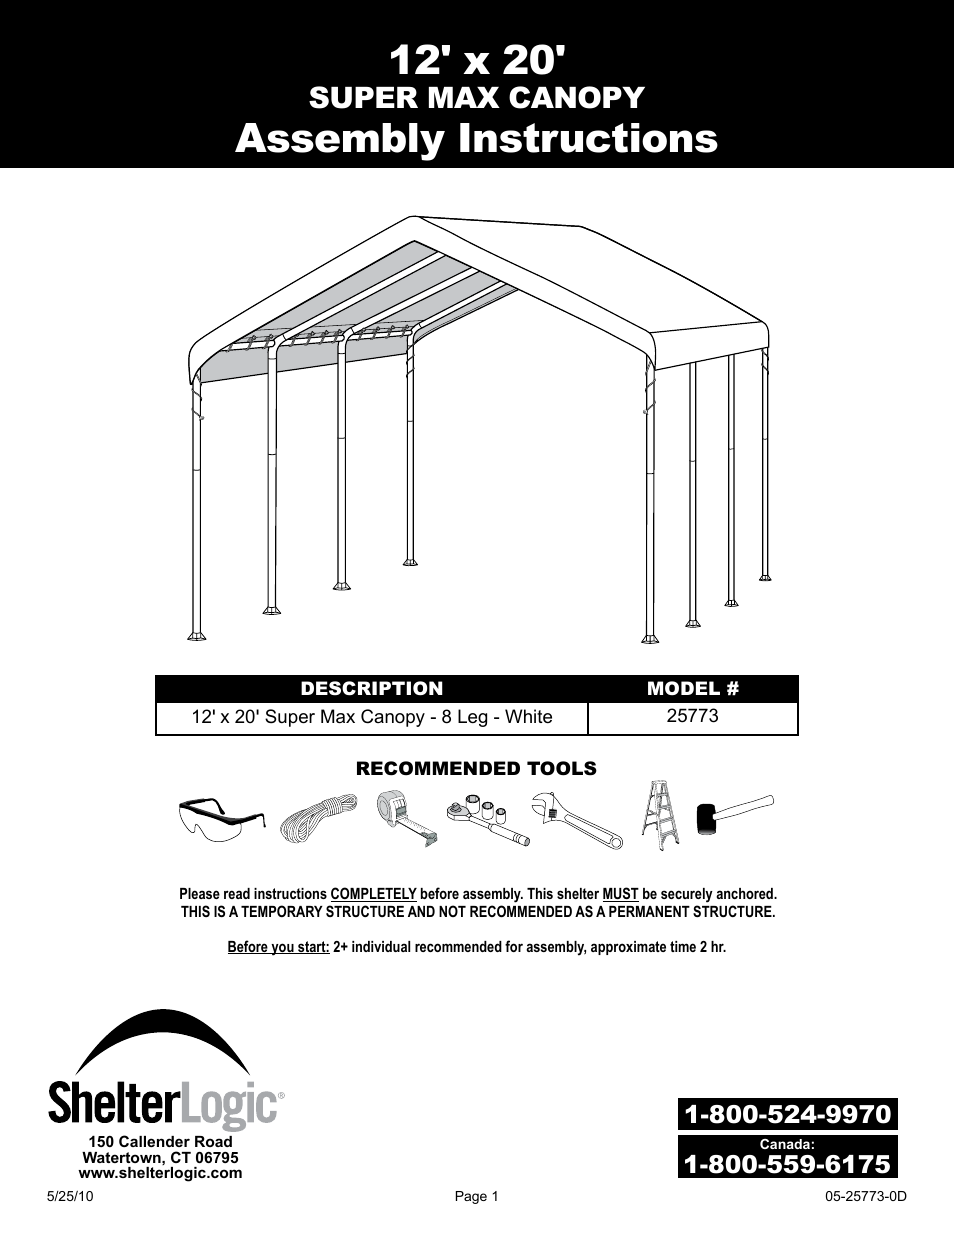 shelterlogic 25773 12 x 20 super max canopy user manual 18 pages rh manualsdir com L Gz358pst 1 Assembly Manual Homelite Pressure Washer Ut80953b Assembly Manuals